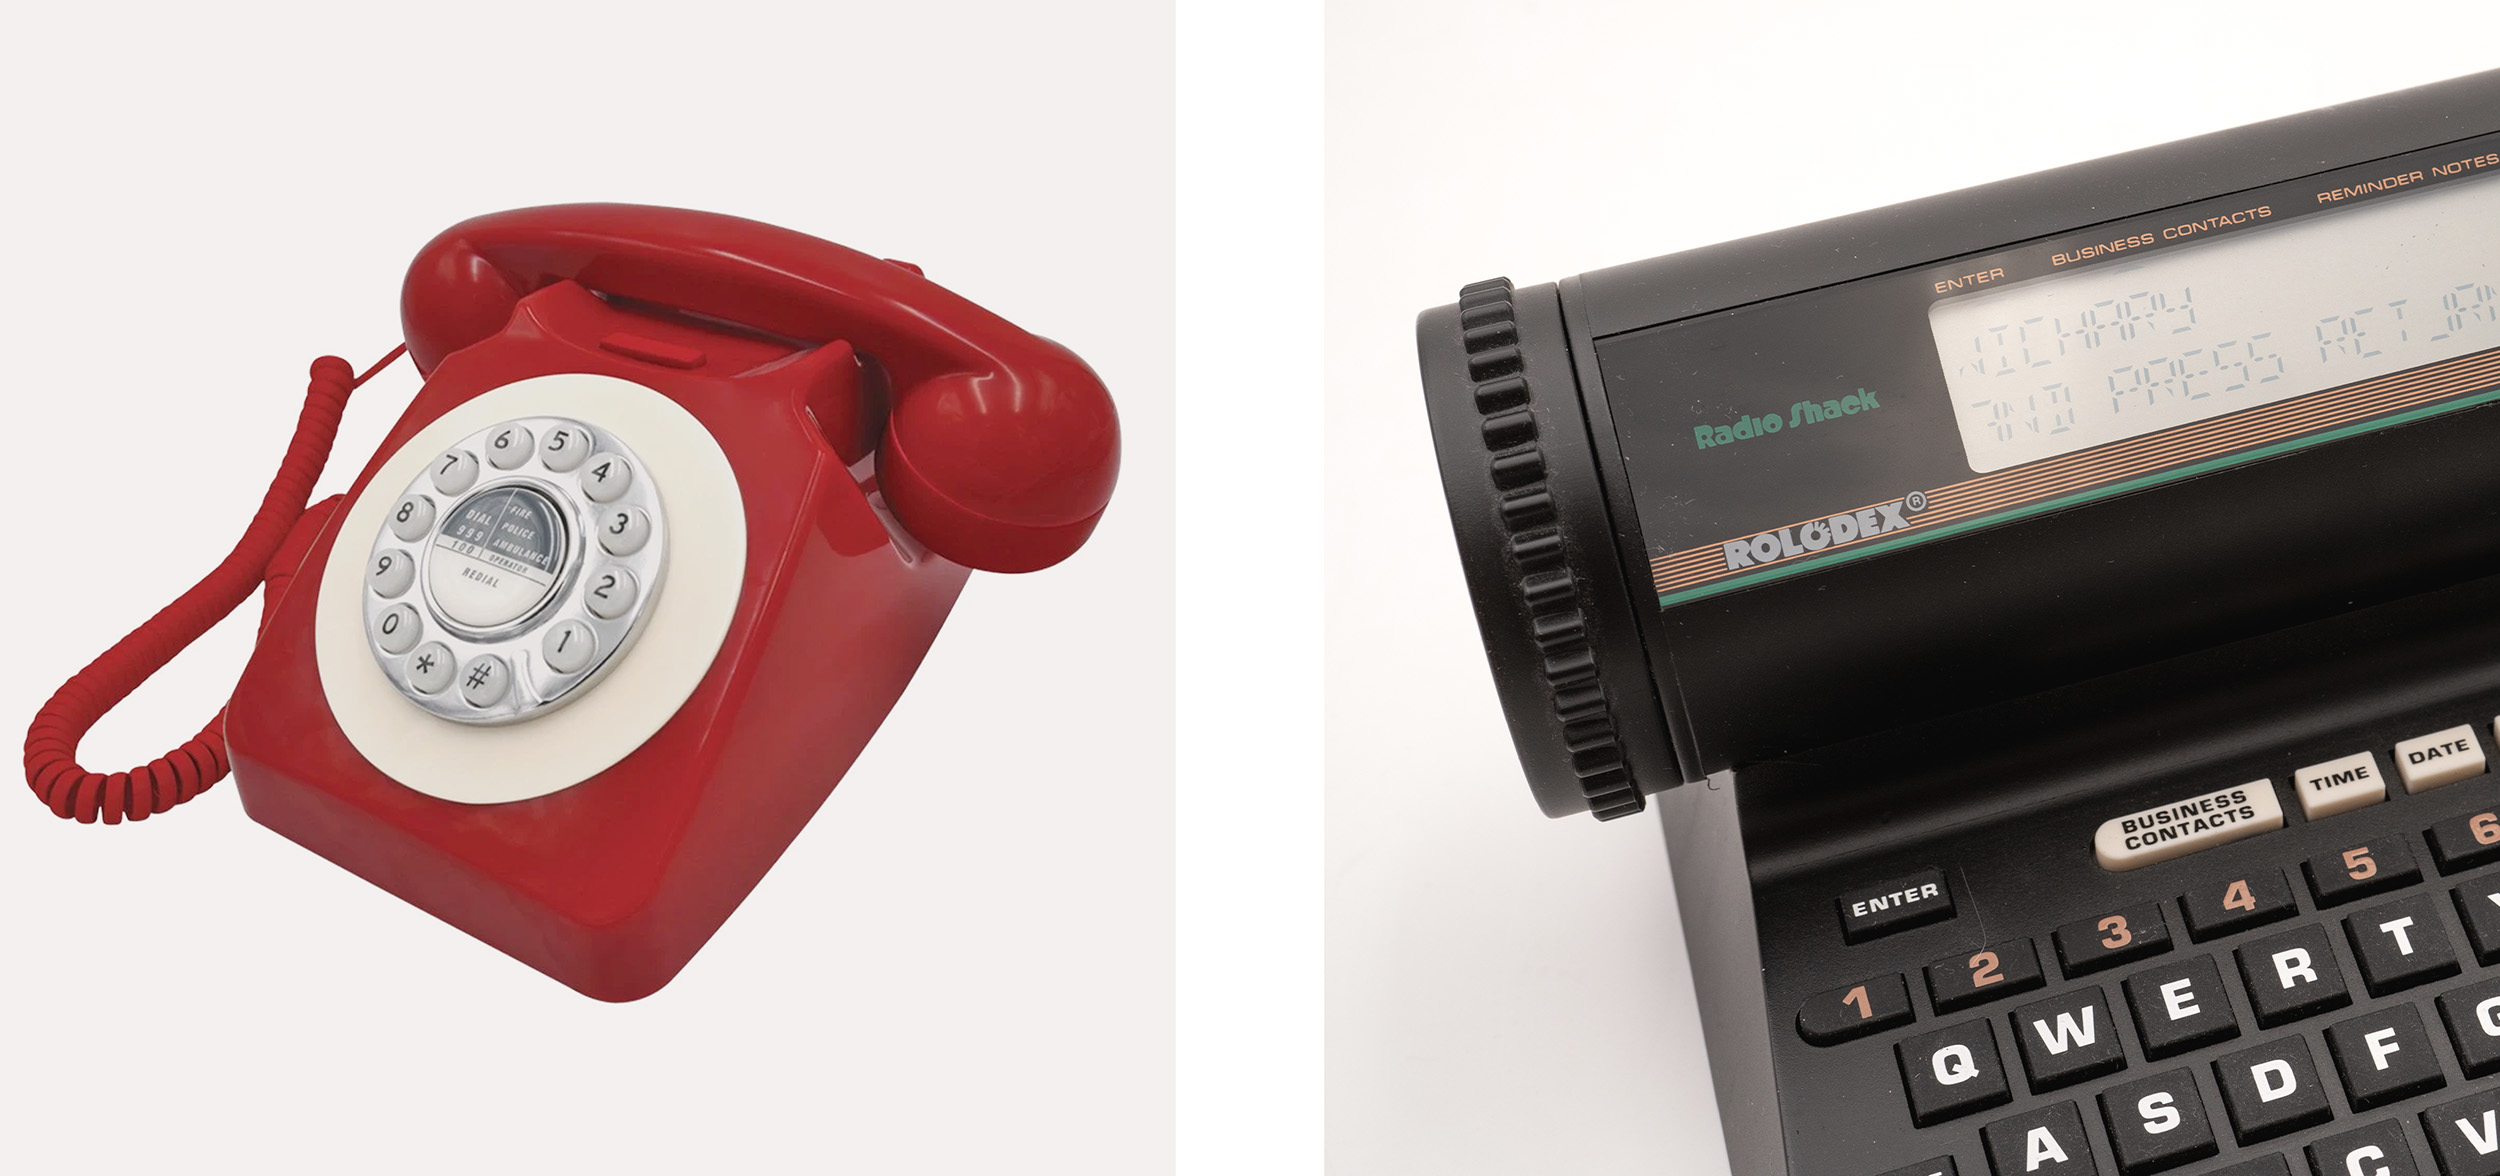 A modern hybrid rotary dial/push button phone, and a 1980s computerized Rolodex where you still rotated a knob to get to your contacts